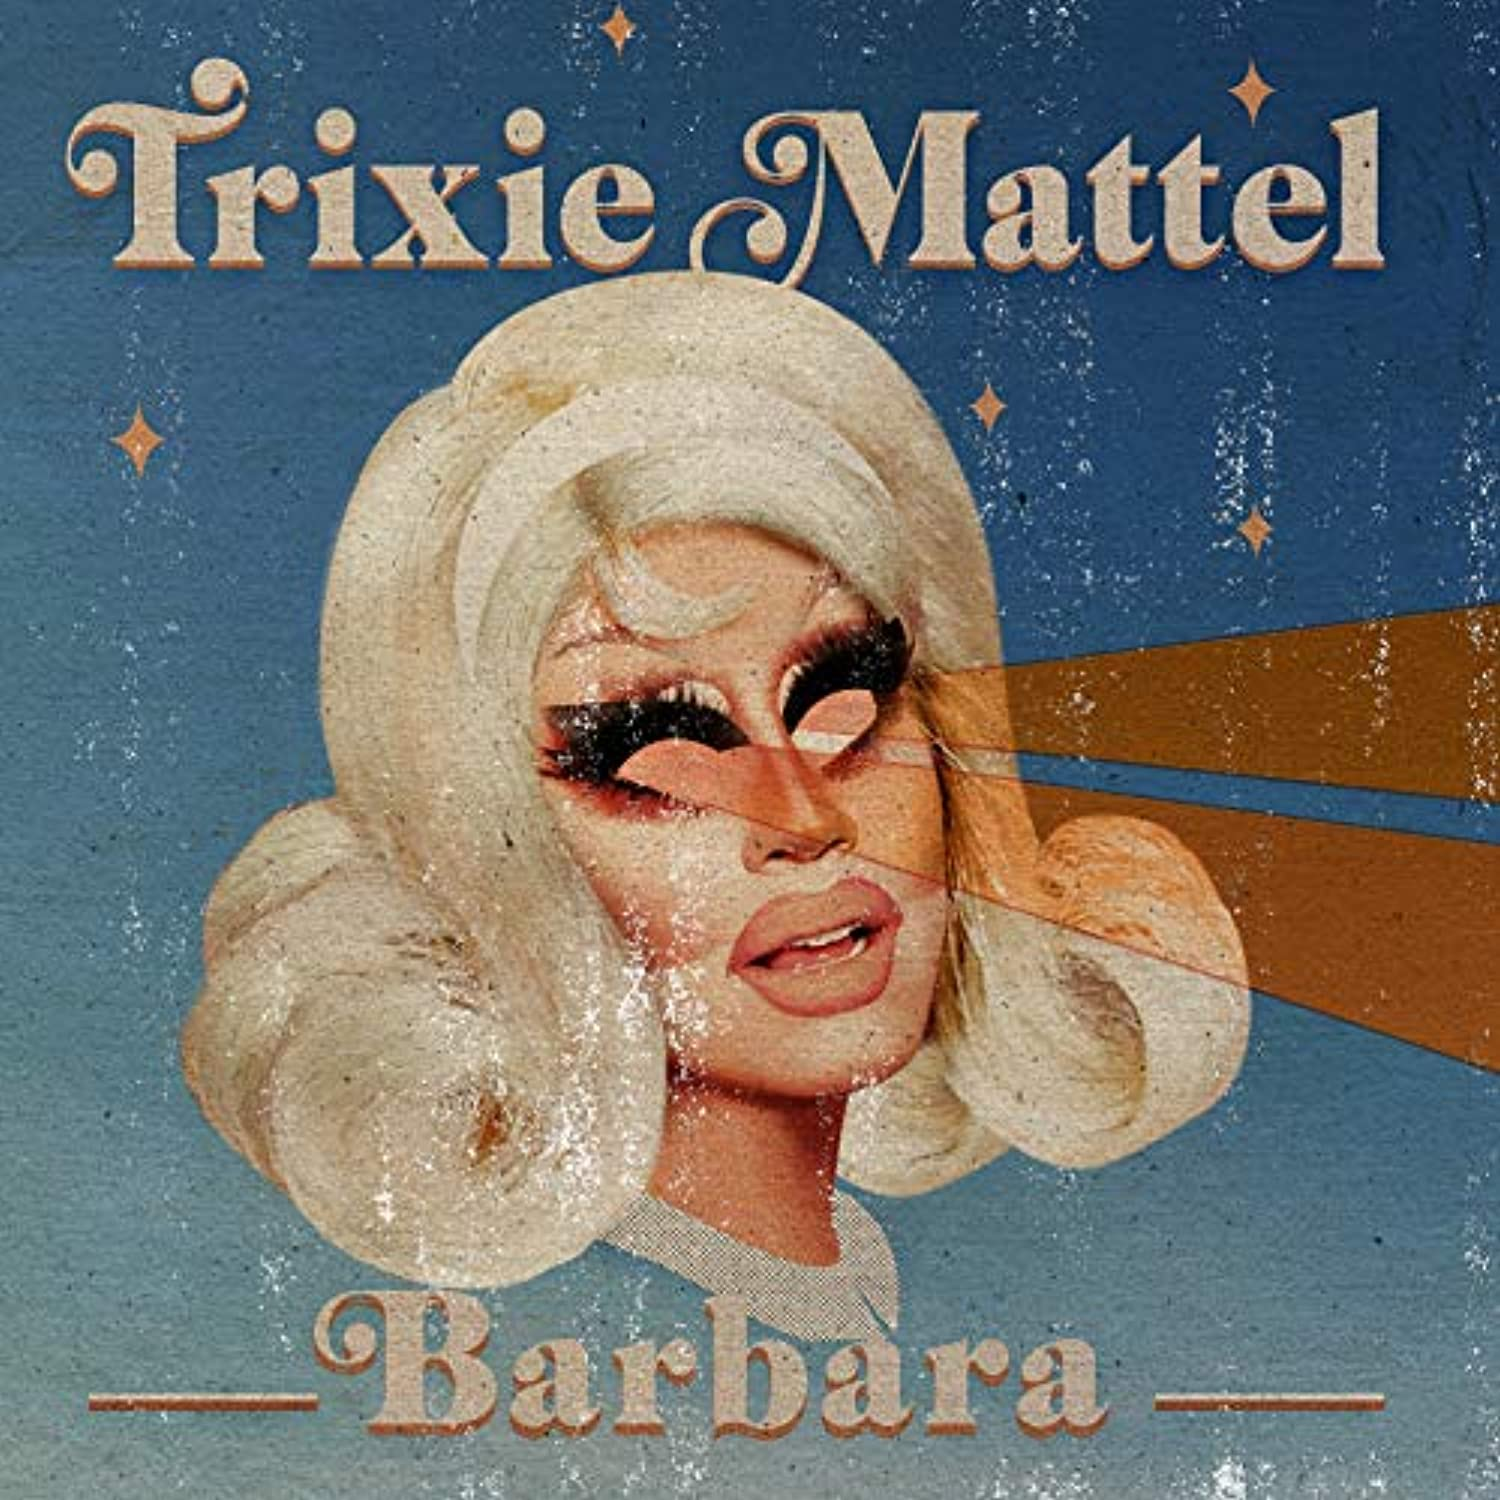 Barbara by Trixie Mattel Vinyl (New)